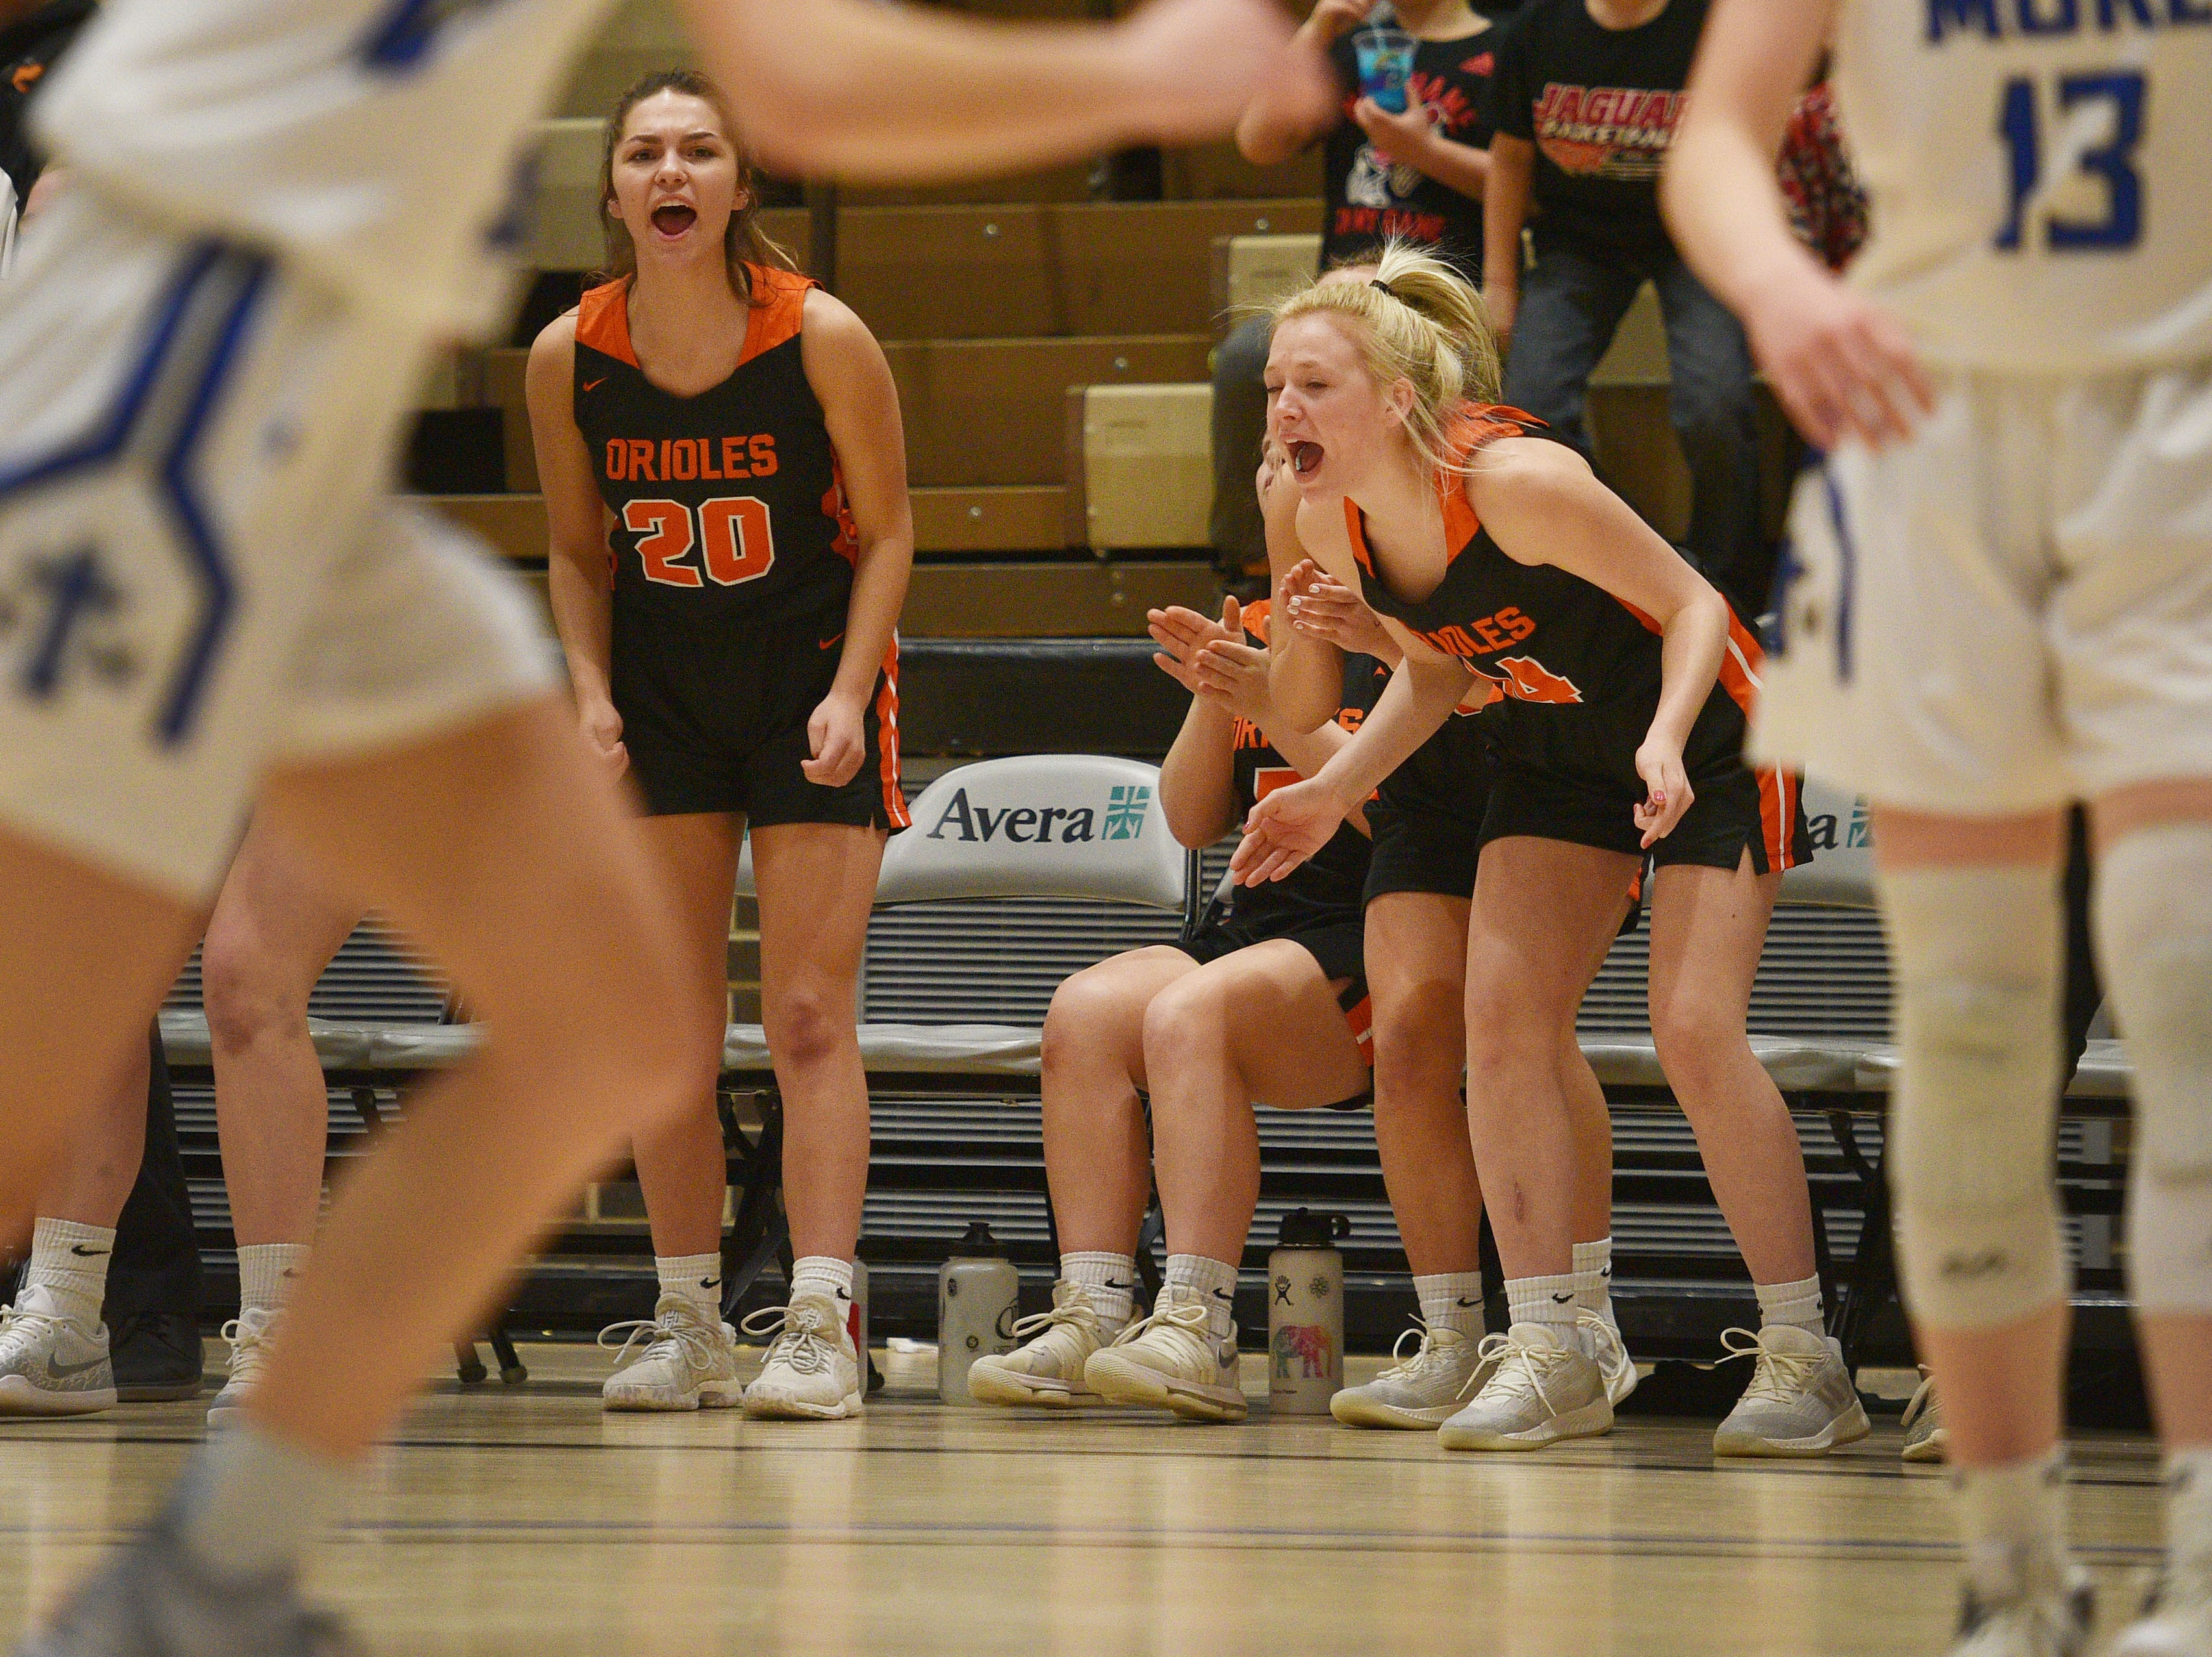 Lennox celebrates during the game against St. Thomas More in the Hanson Girls Classic Saturday,  Jan. 12, in Mitchell.